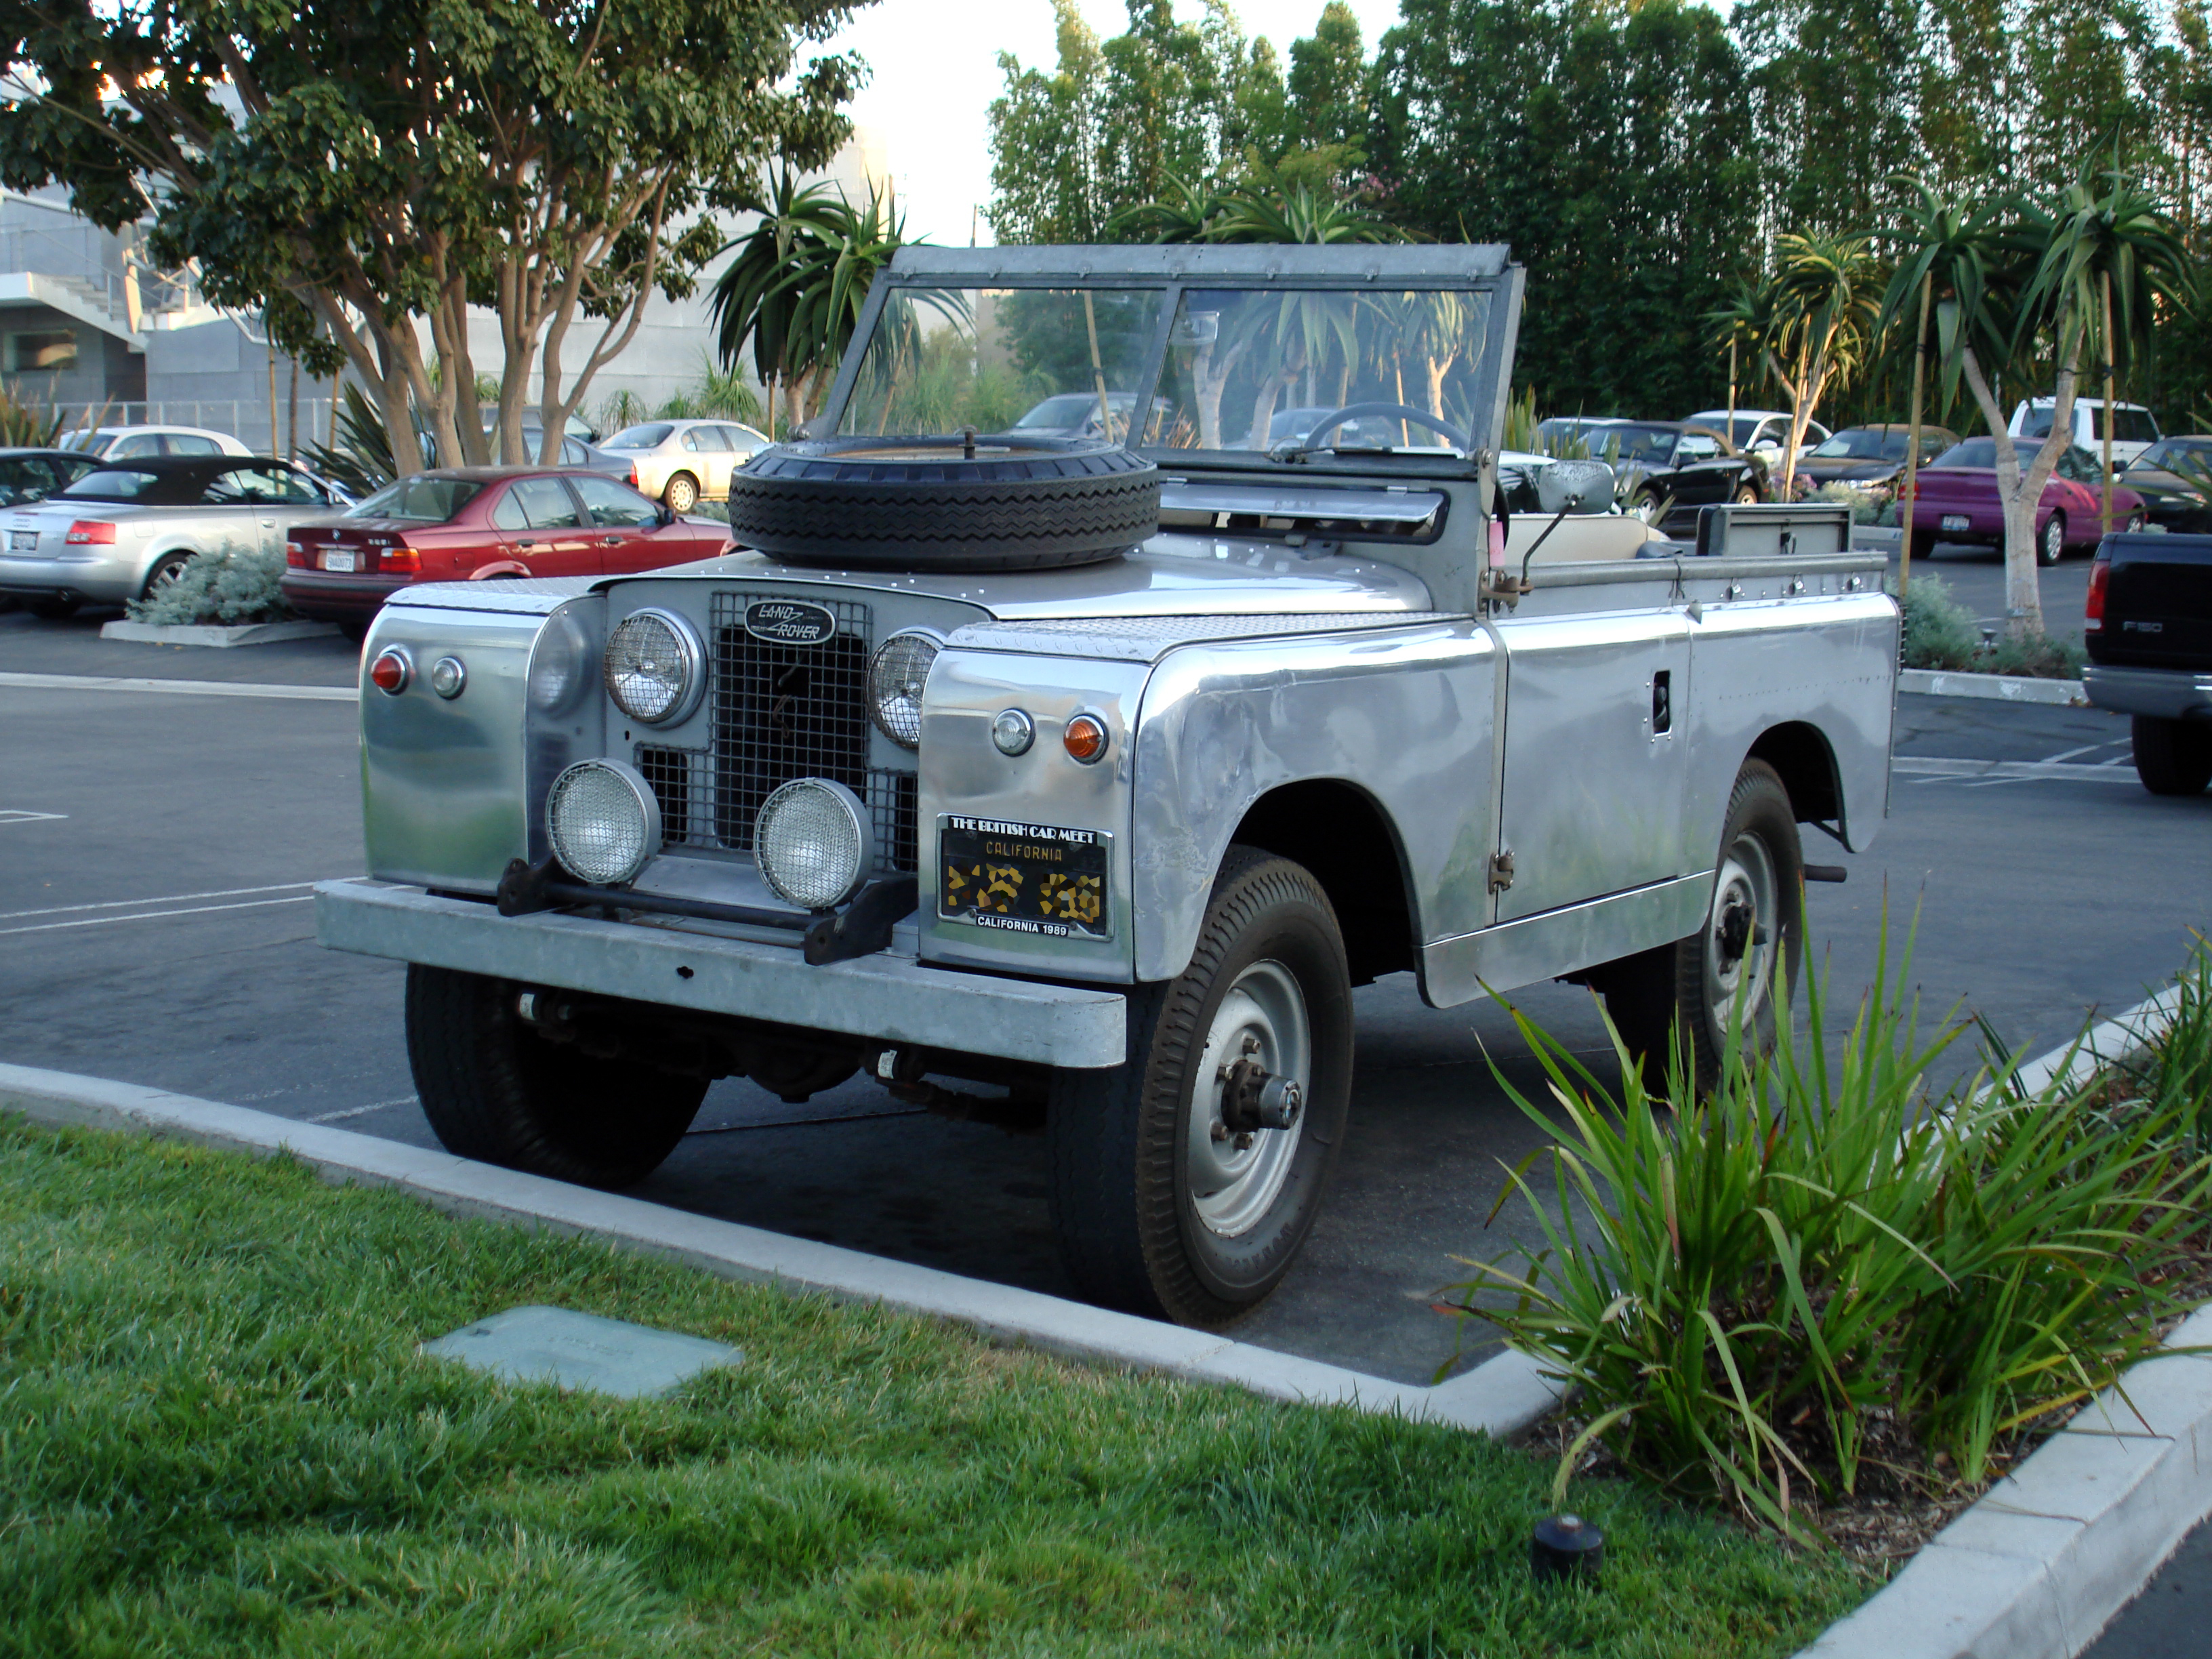 Land-Rover Series image #2